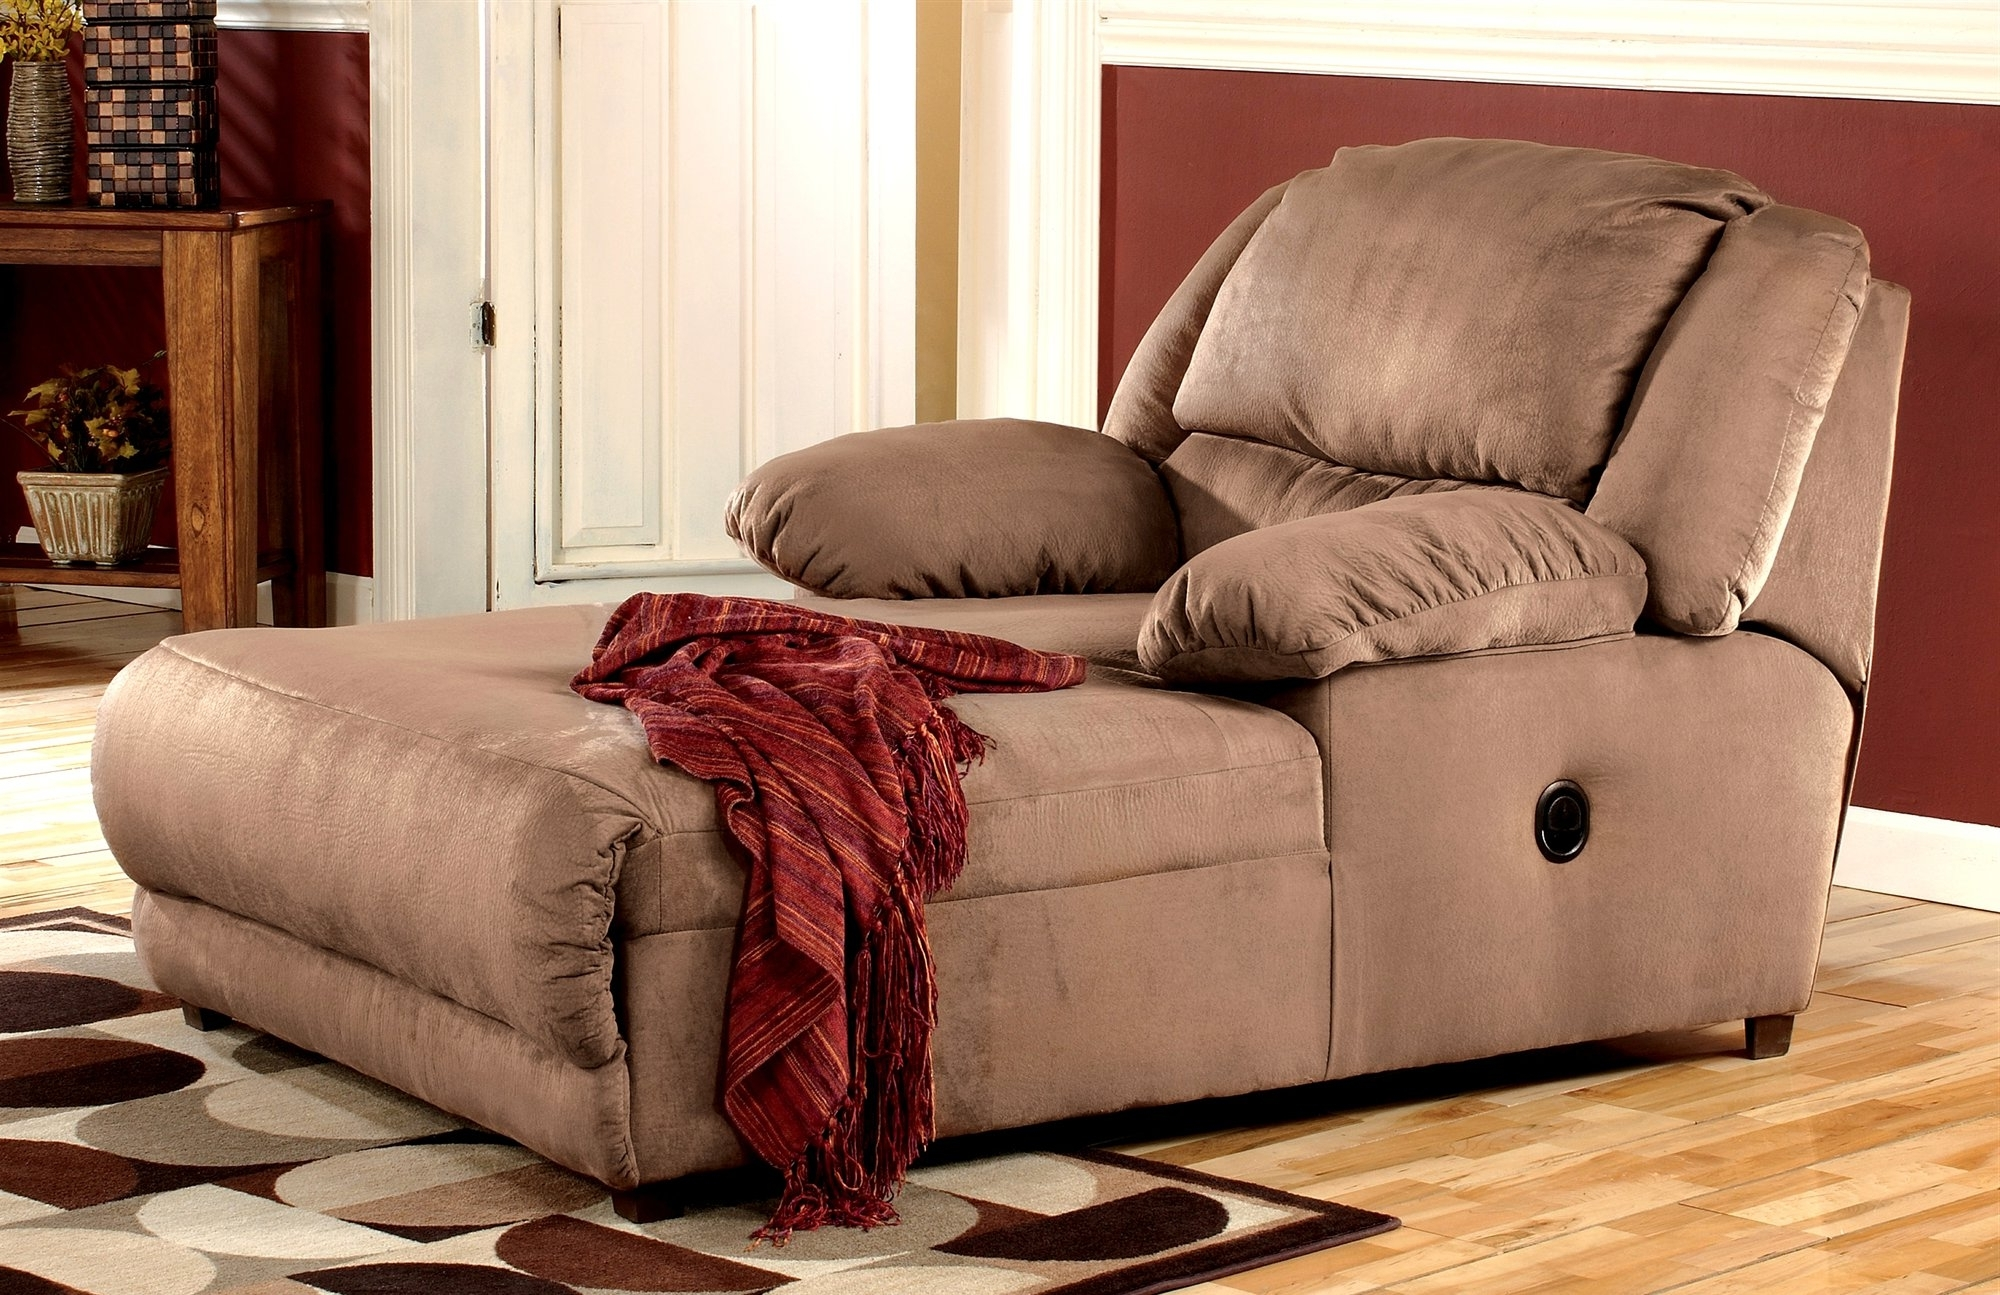 Widely Used Recliner Chaise Lounges Pertaining To Interior: Alluring Furniture Chaise Lounge Indoor For Living Room (View 15 of 15)